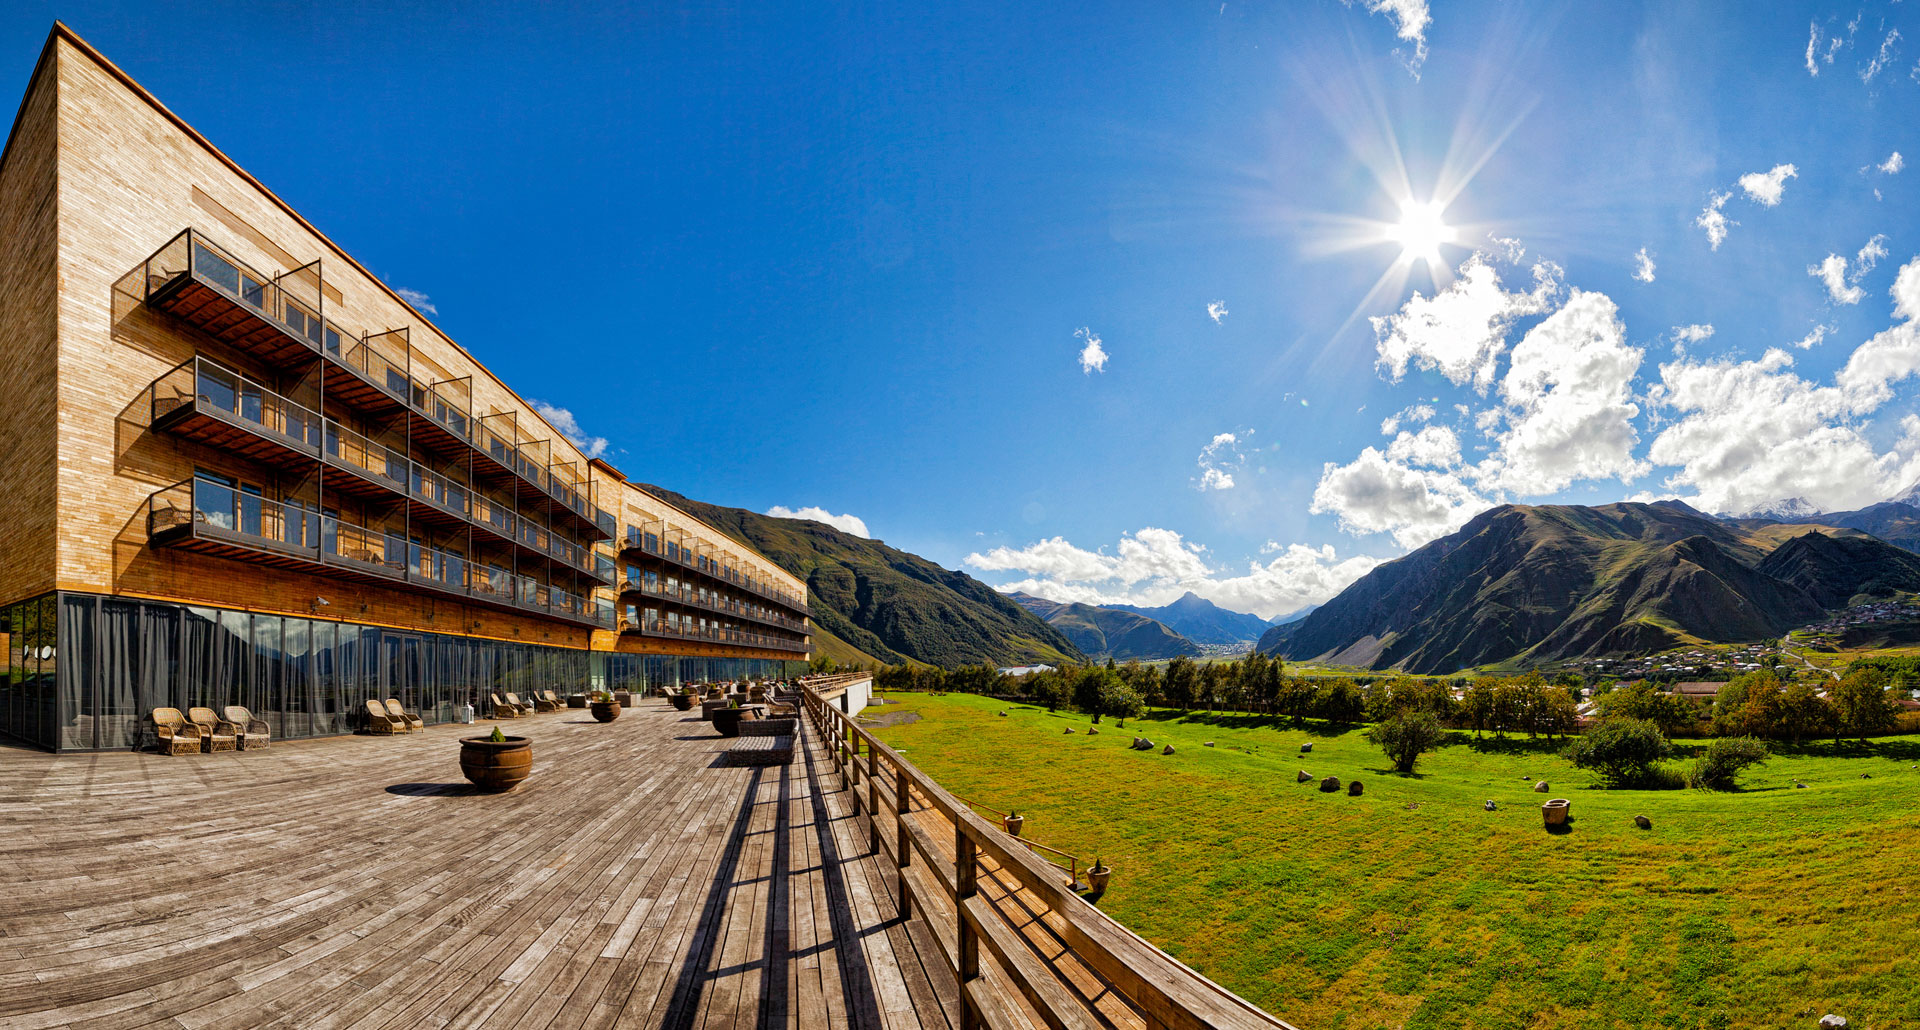 Rooms Hotel Kazbegi - boutique hotel in Stepantsminda